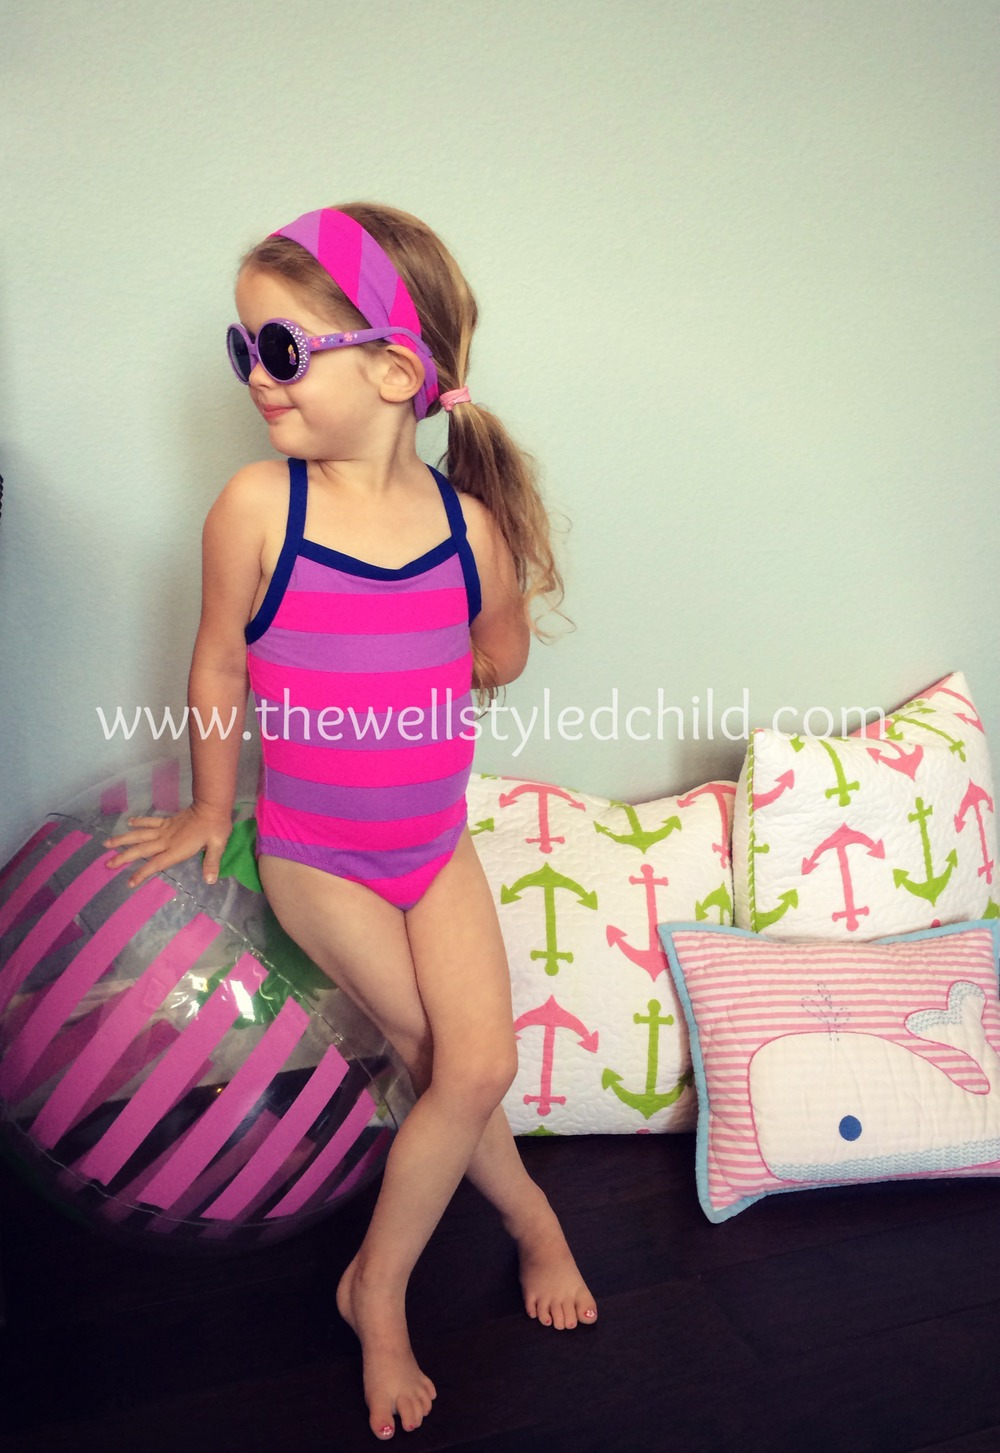 Garnet Hill Kids Wave Rider Cross Back One Piece Rugby Stripe Swimsuit  Garnet Hill Kids Swim Headband  Sunglasses:  The Disney Store